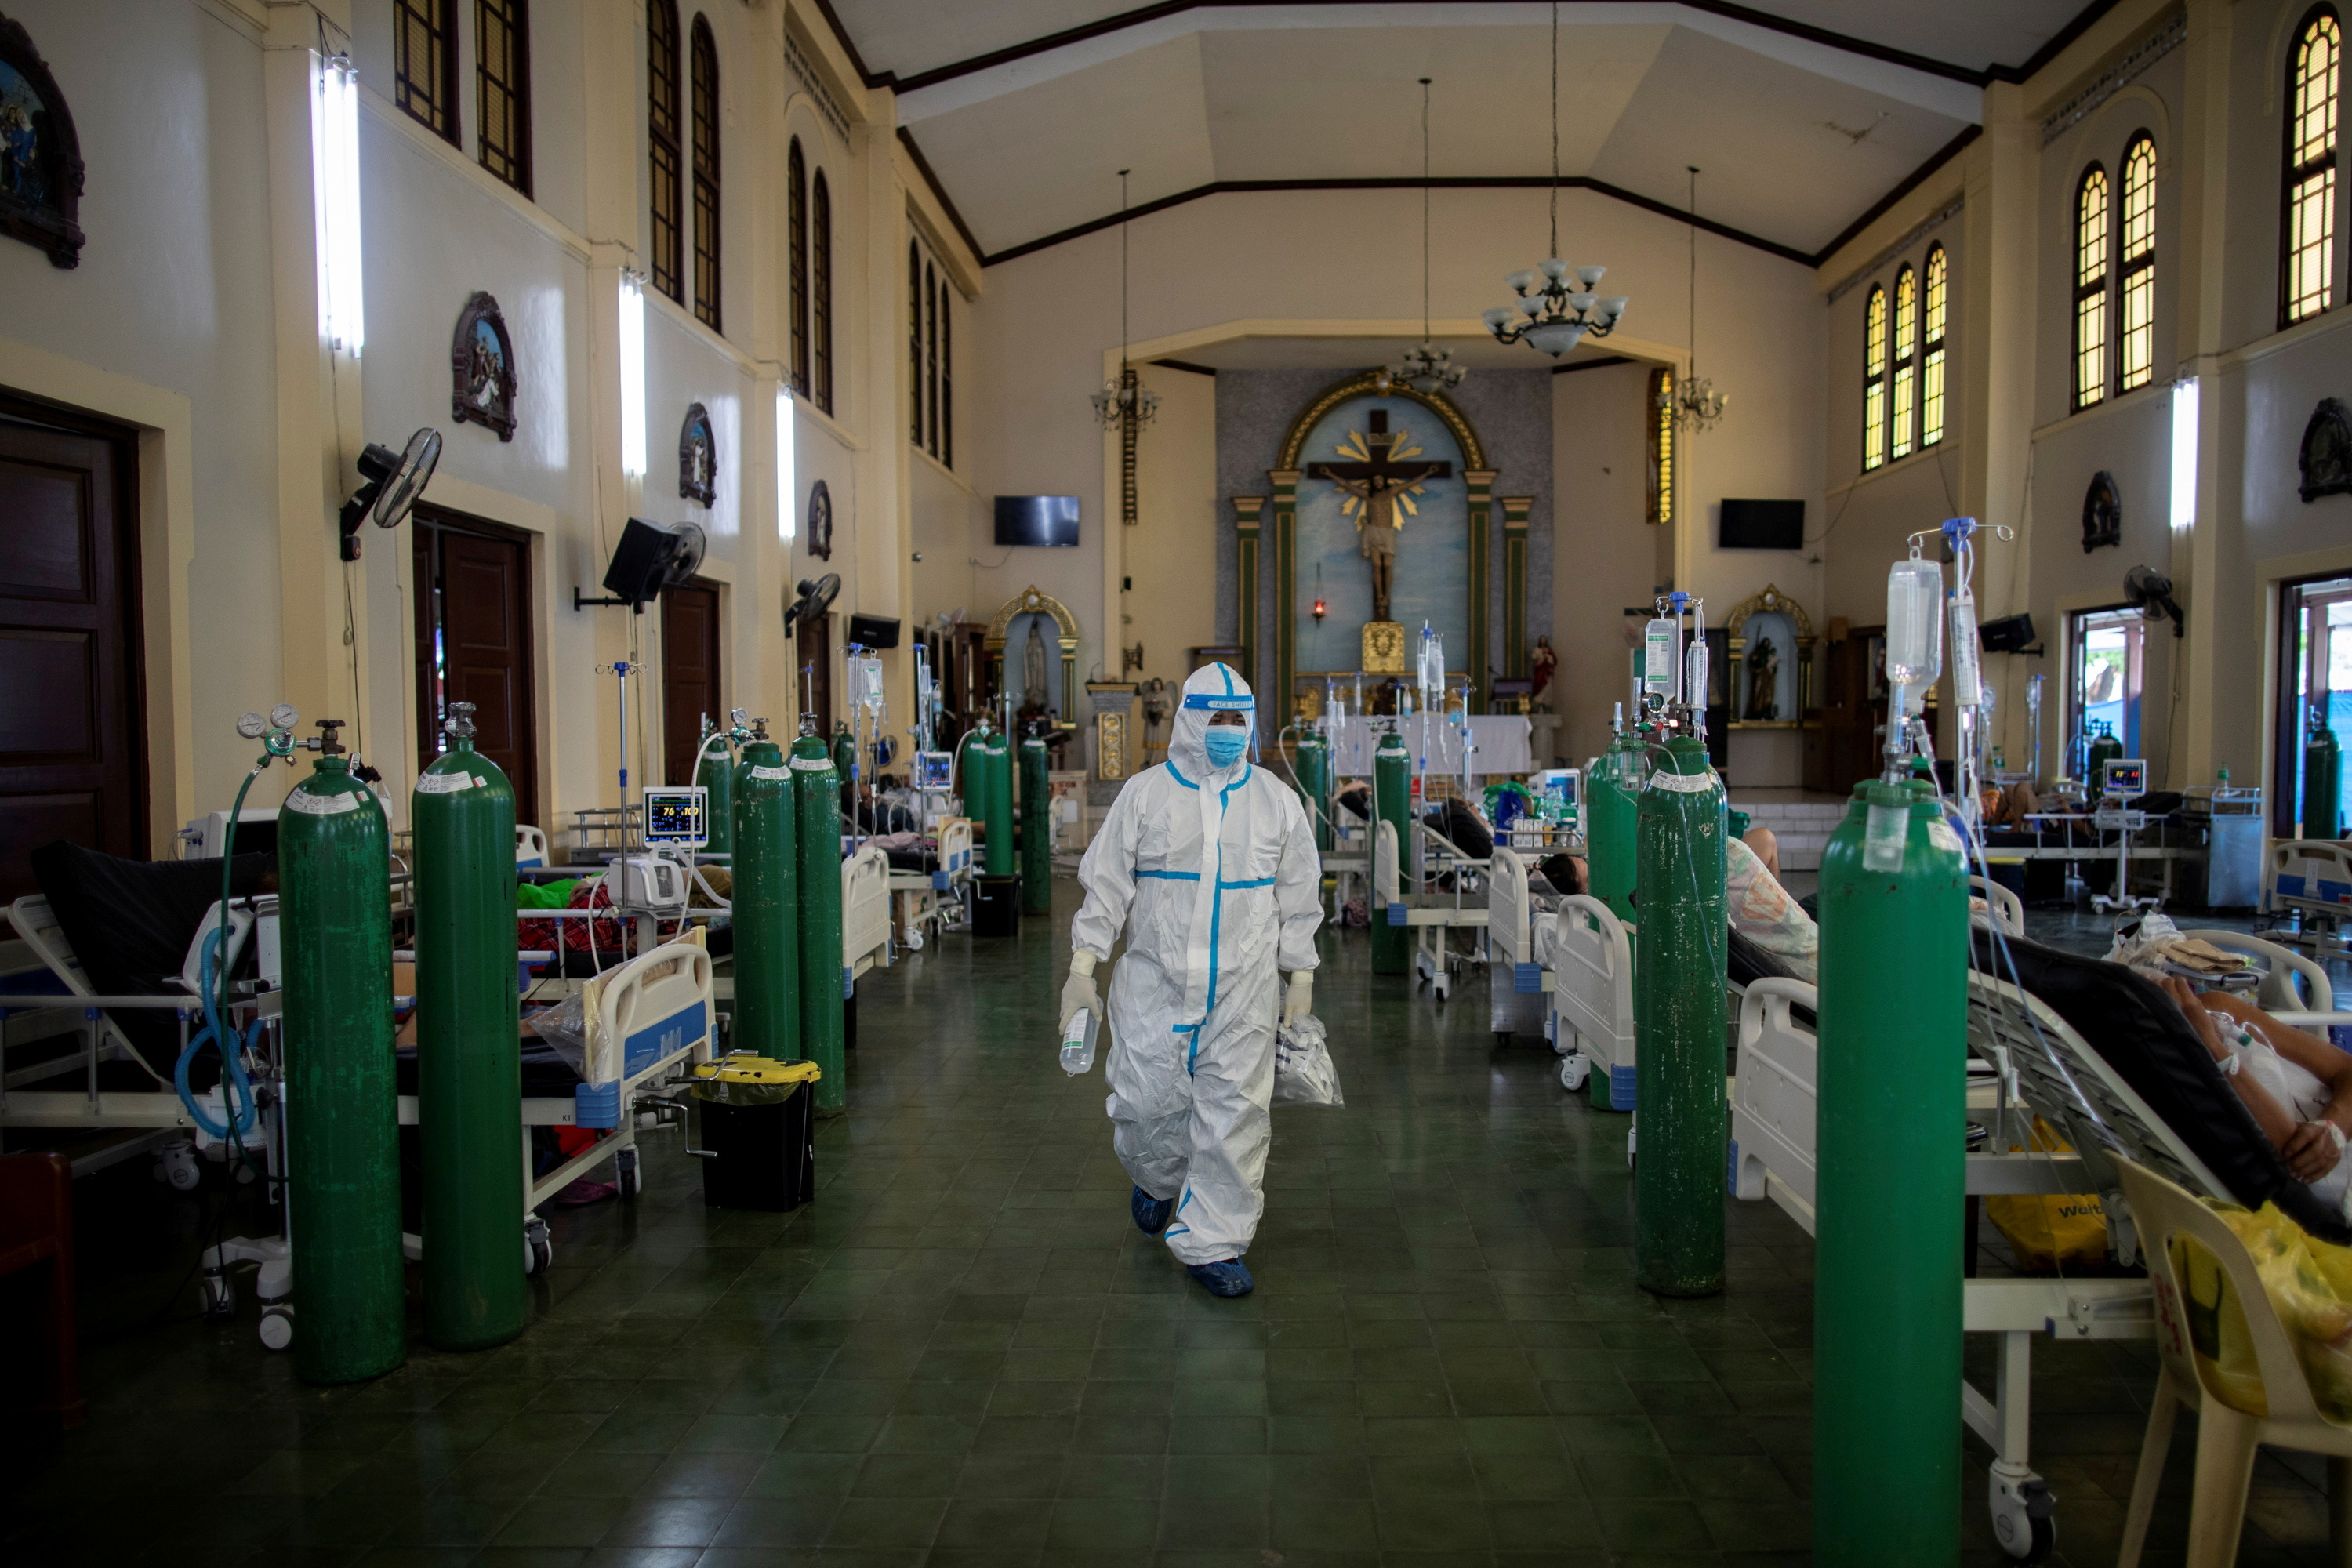 A health worker walks around to check on coronavirus disease (COVID-19) patients admitted in the chapel of Quezon City General Hospital turned into a COVID-19 ward amid rising infections, in Quezon City, Metro Manila, Philippines, August 20, 2021. REUTERS/Eloisa Lopez